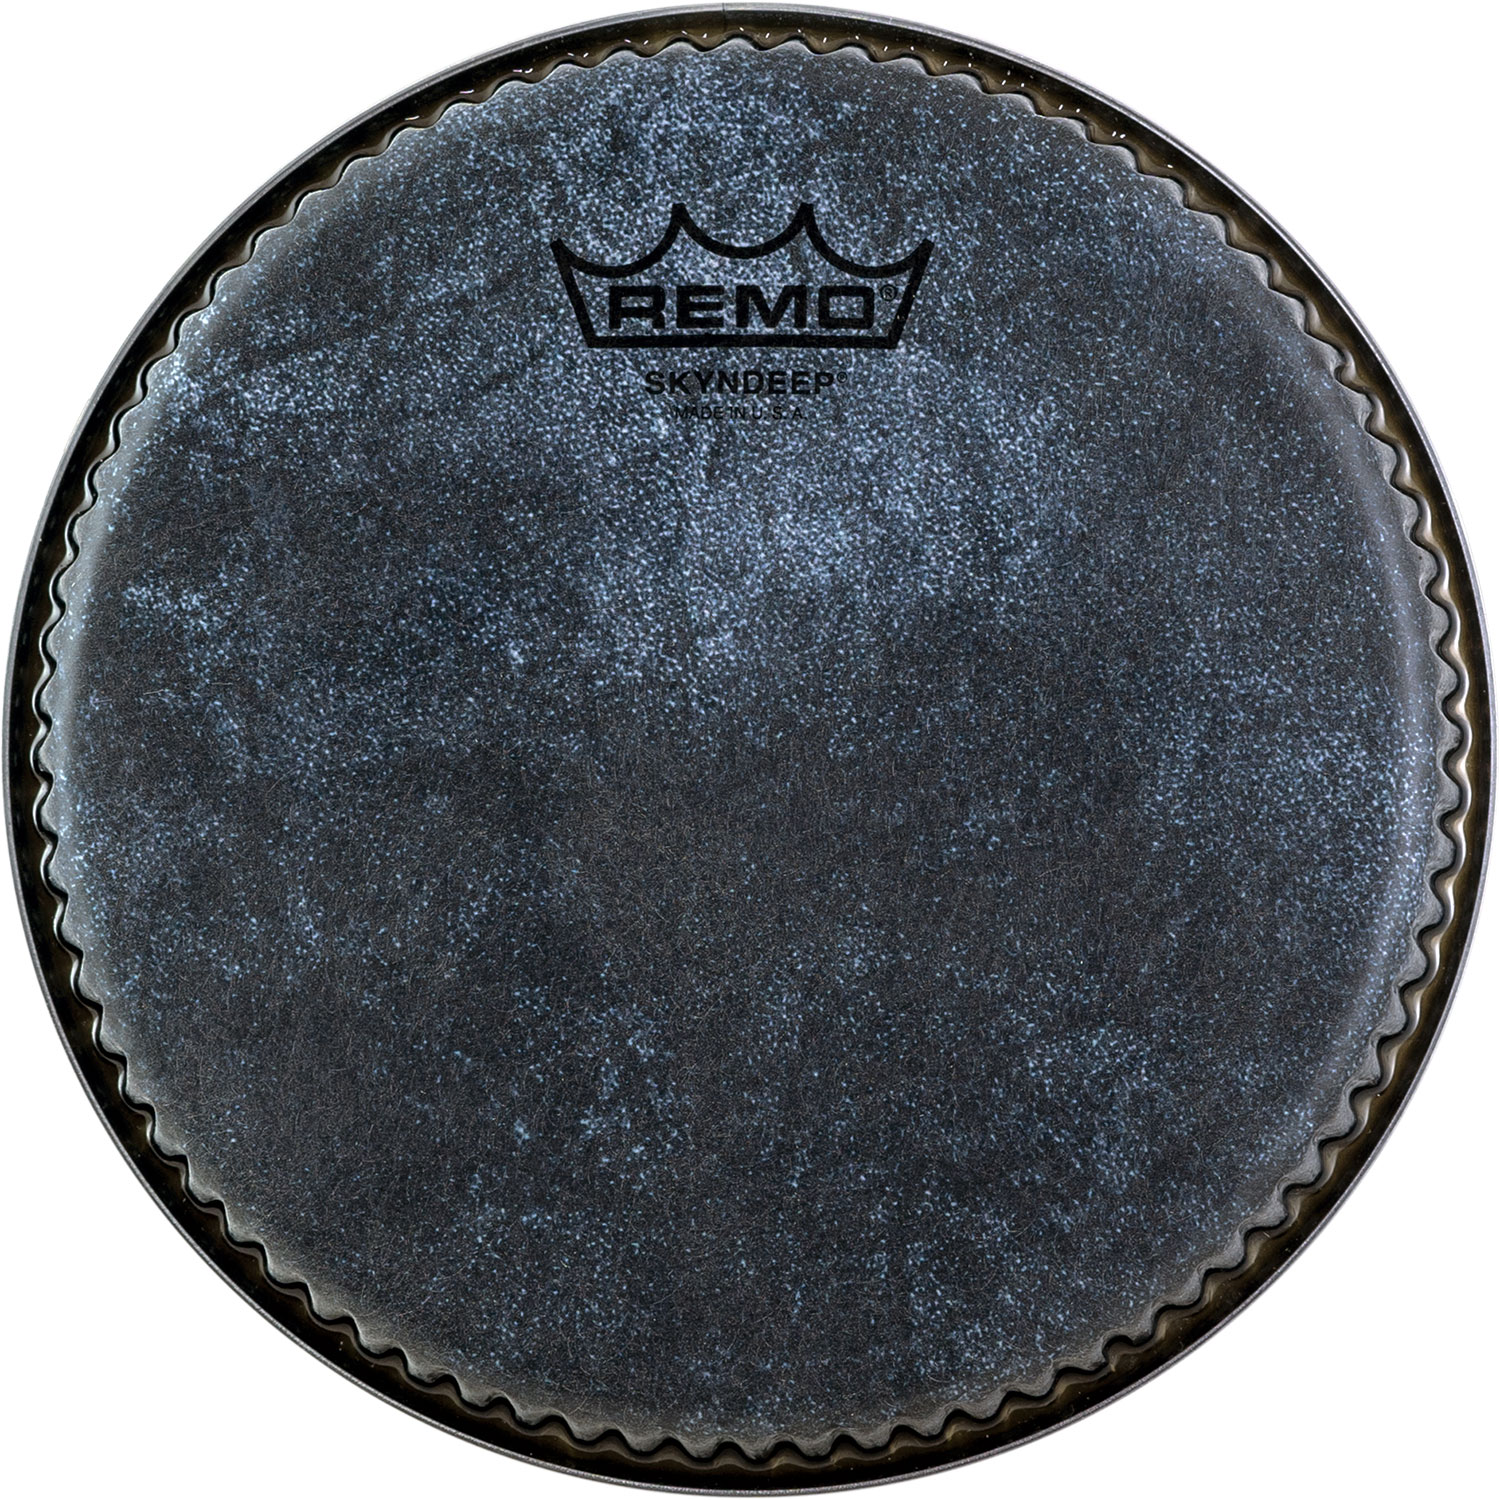 "Remo 7.15"" R-Series Skyndeep Bongo Drum Head with Black Calfskin Graphic"